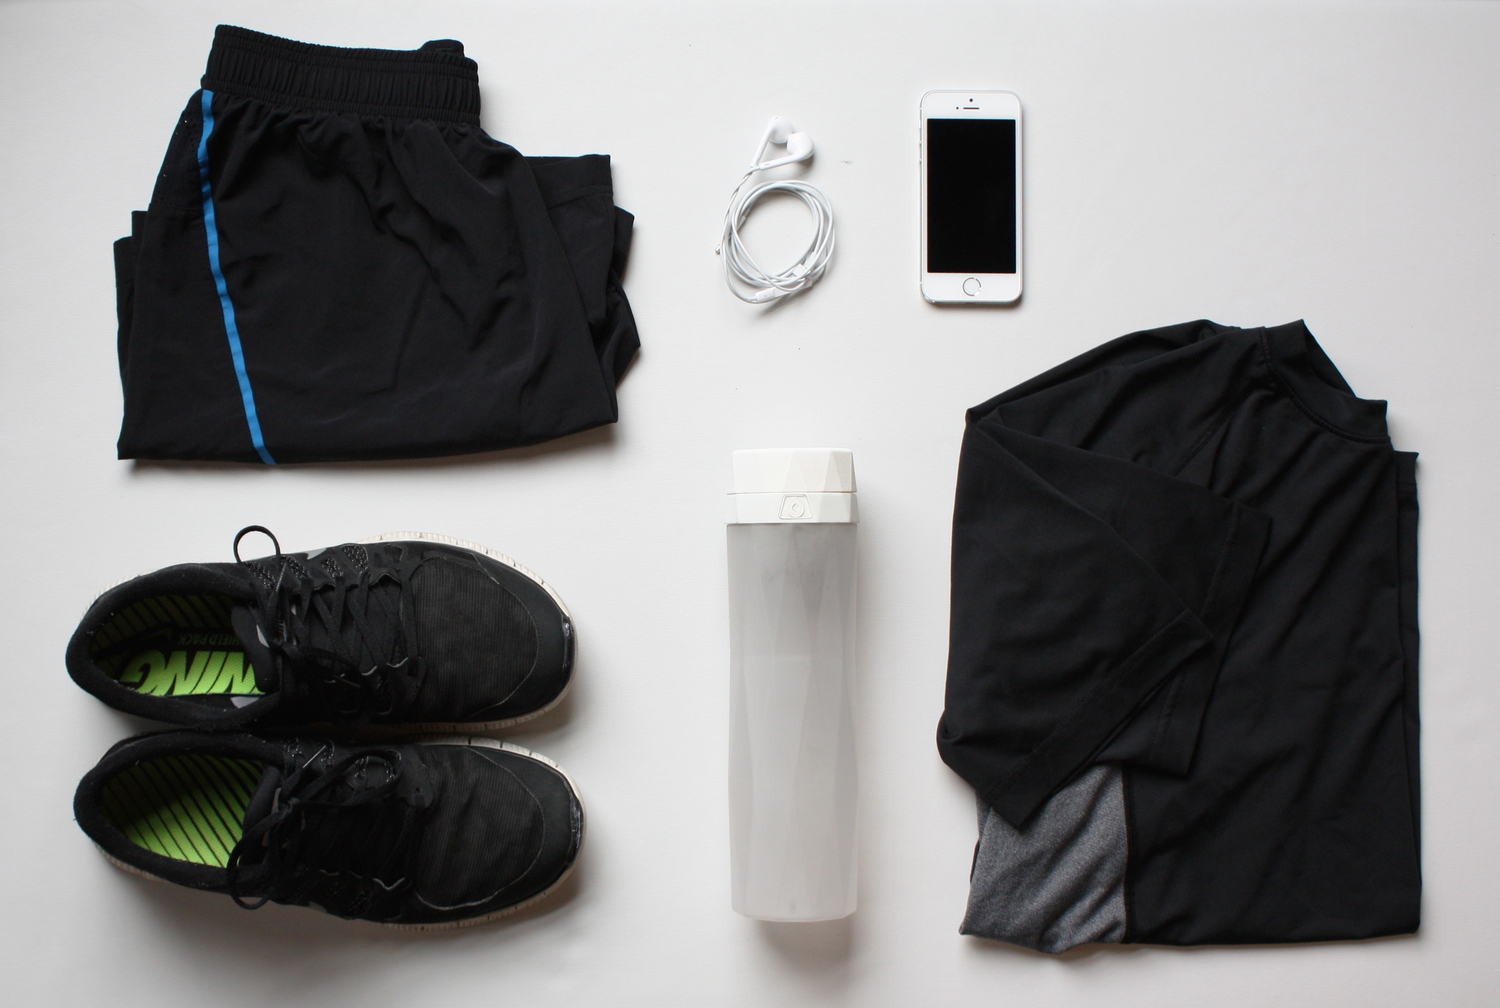 mens+bottle+and+workout+clothes